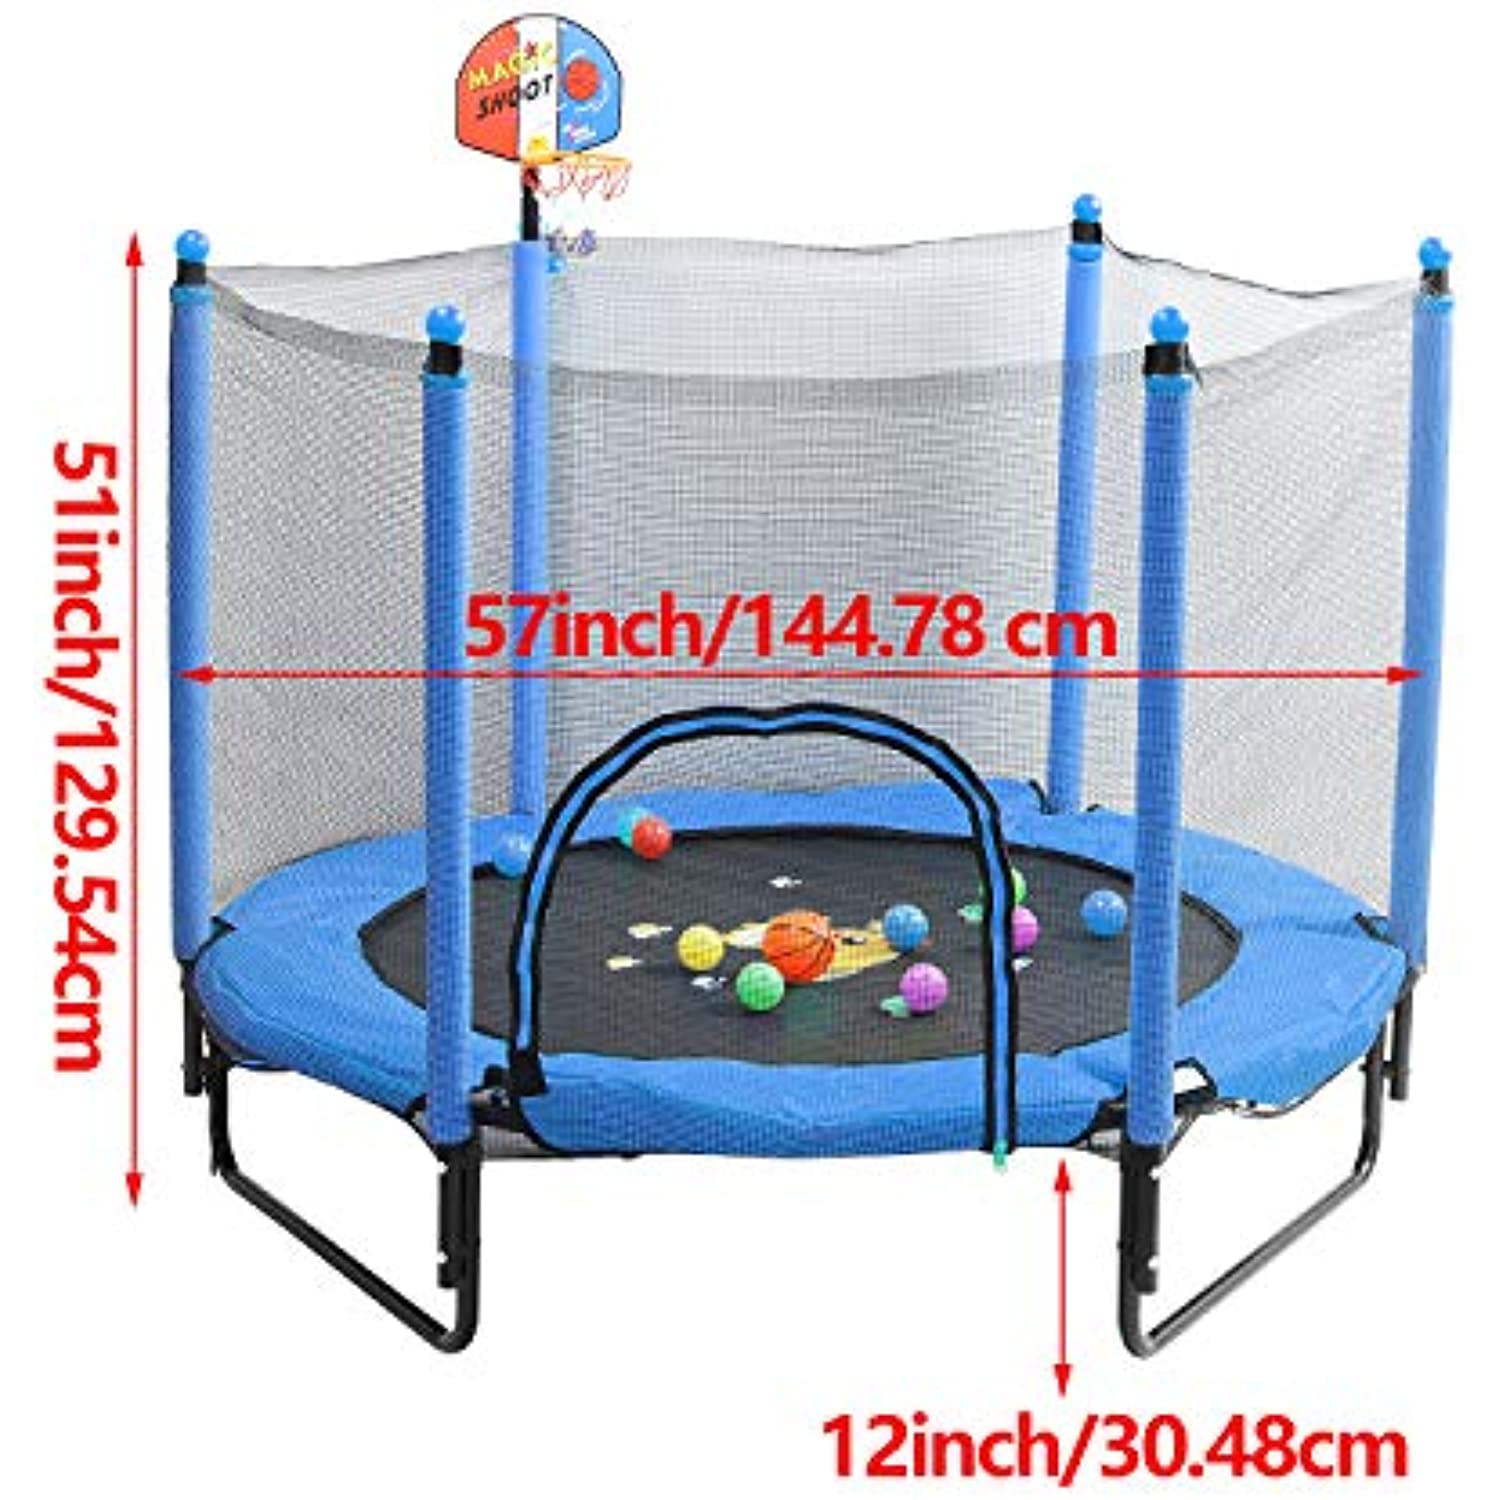 Trampoline for Kids 5 FT Indoor Outdoor Toddler Trampoline Bulit-in Zipper Heavy Duty Steel Frame with Basketball Hoop, Rubber Ball and Safety Net